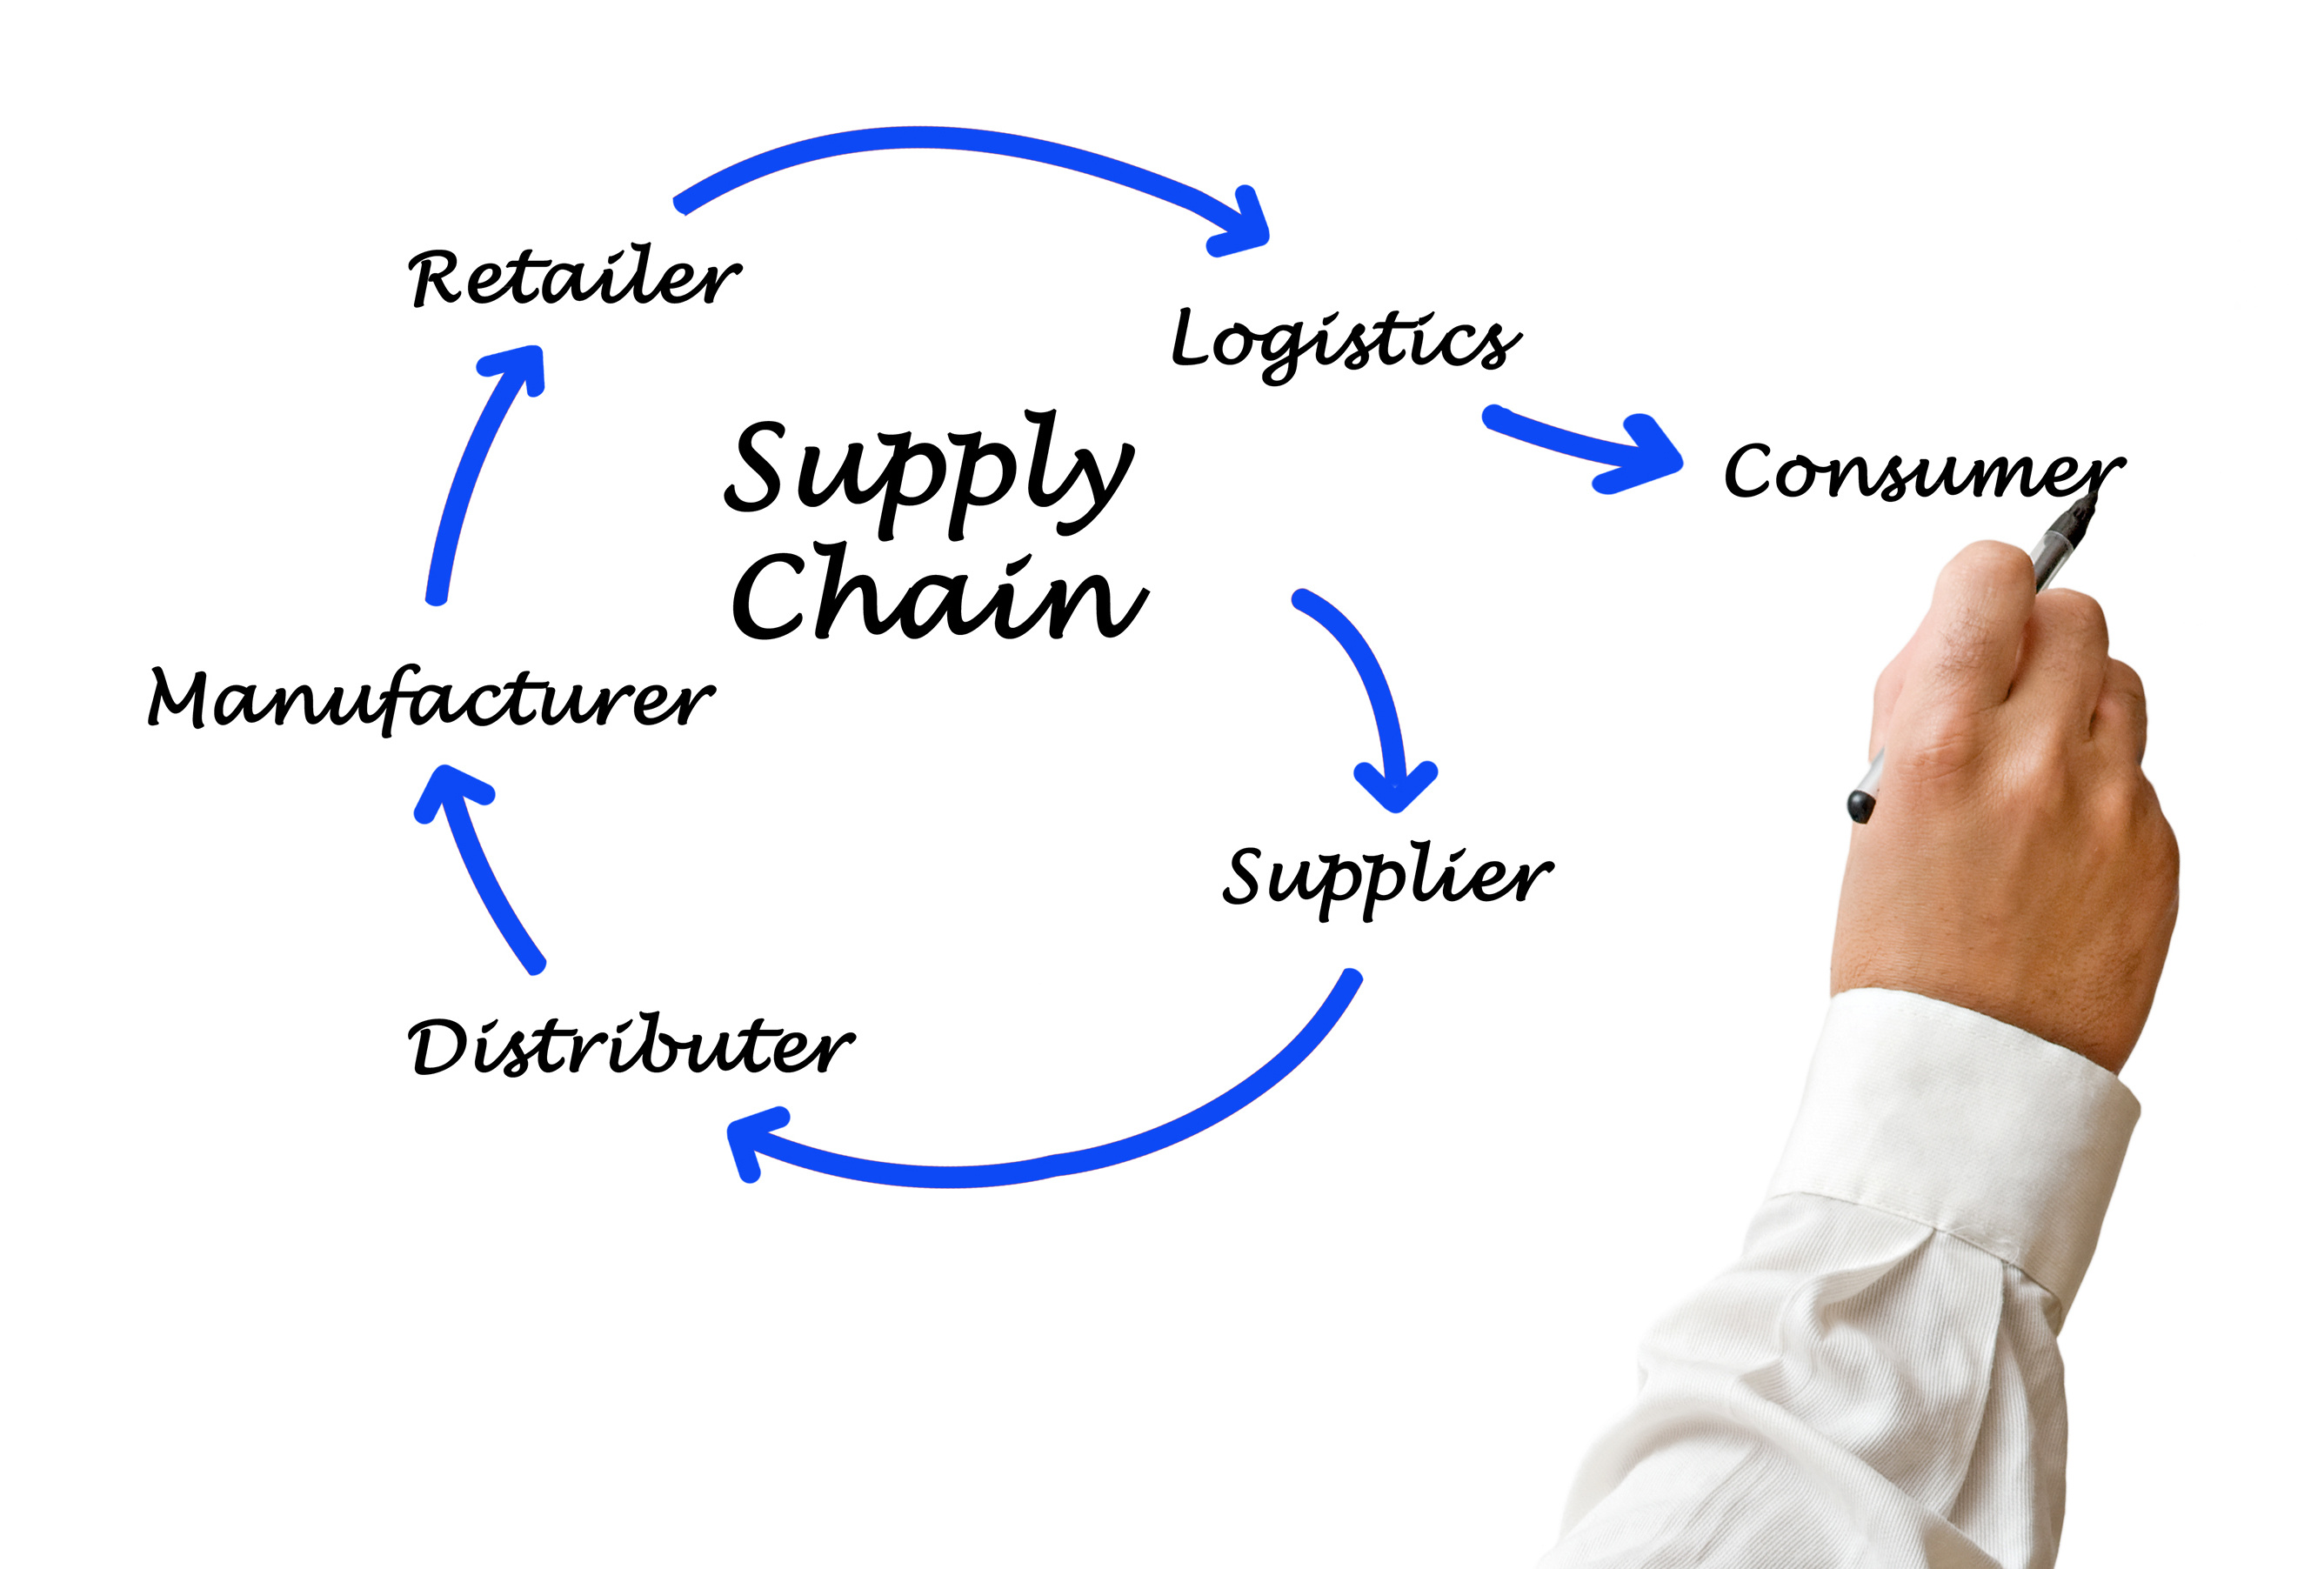 supply chain mgmt Supply chain management (scm) is the active management of supply chain activities to maximize customer value and achieve a sustainable competitive advantage real-time data will impact how quality is managed in supply chains.